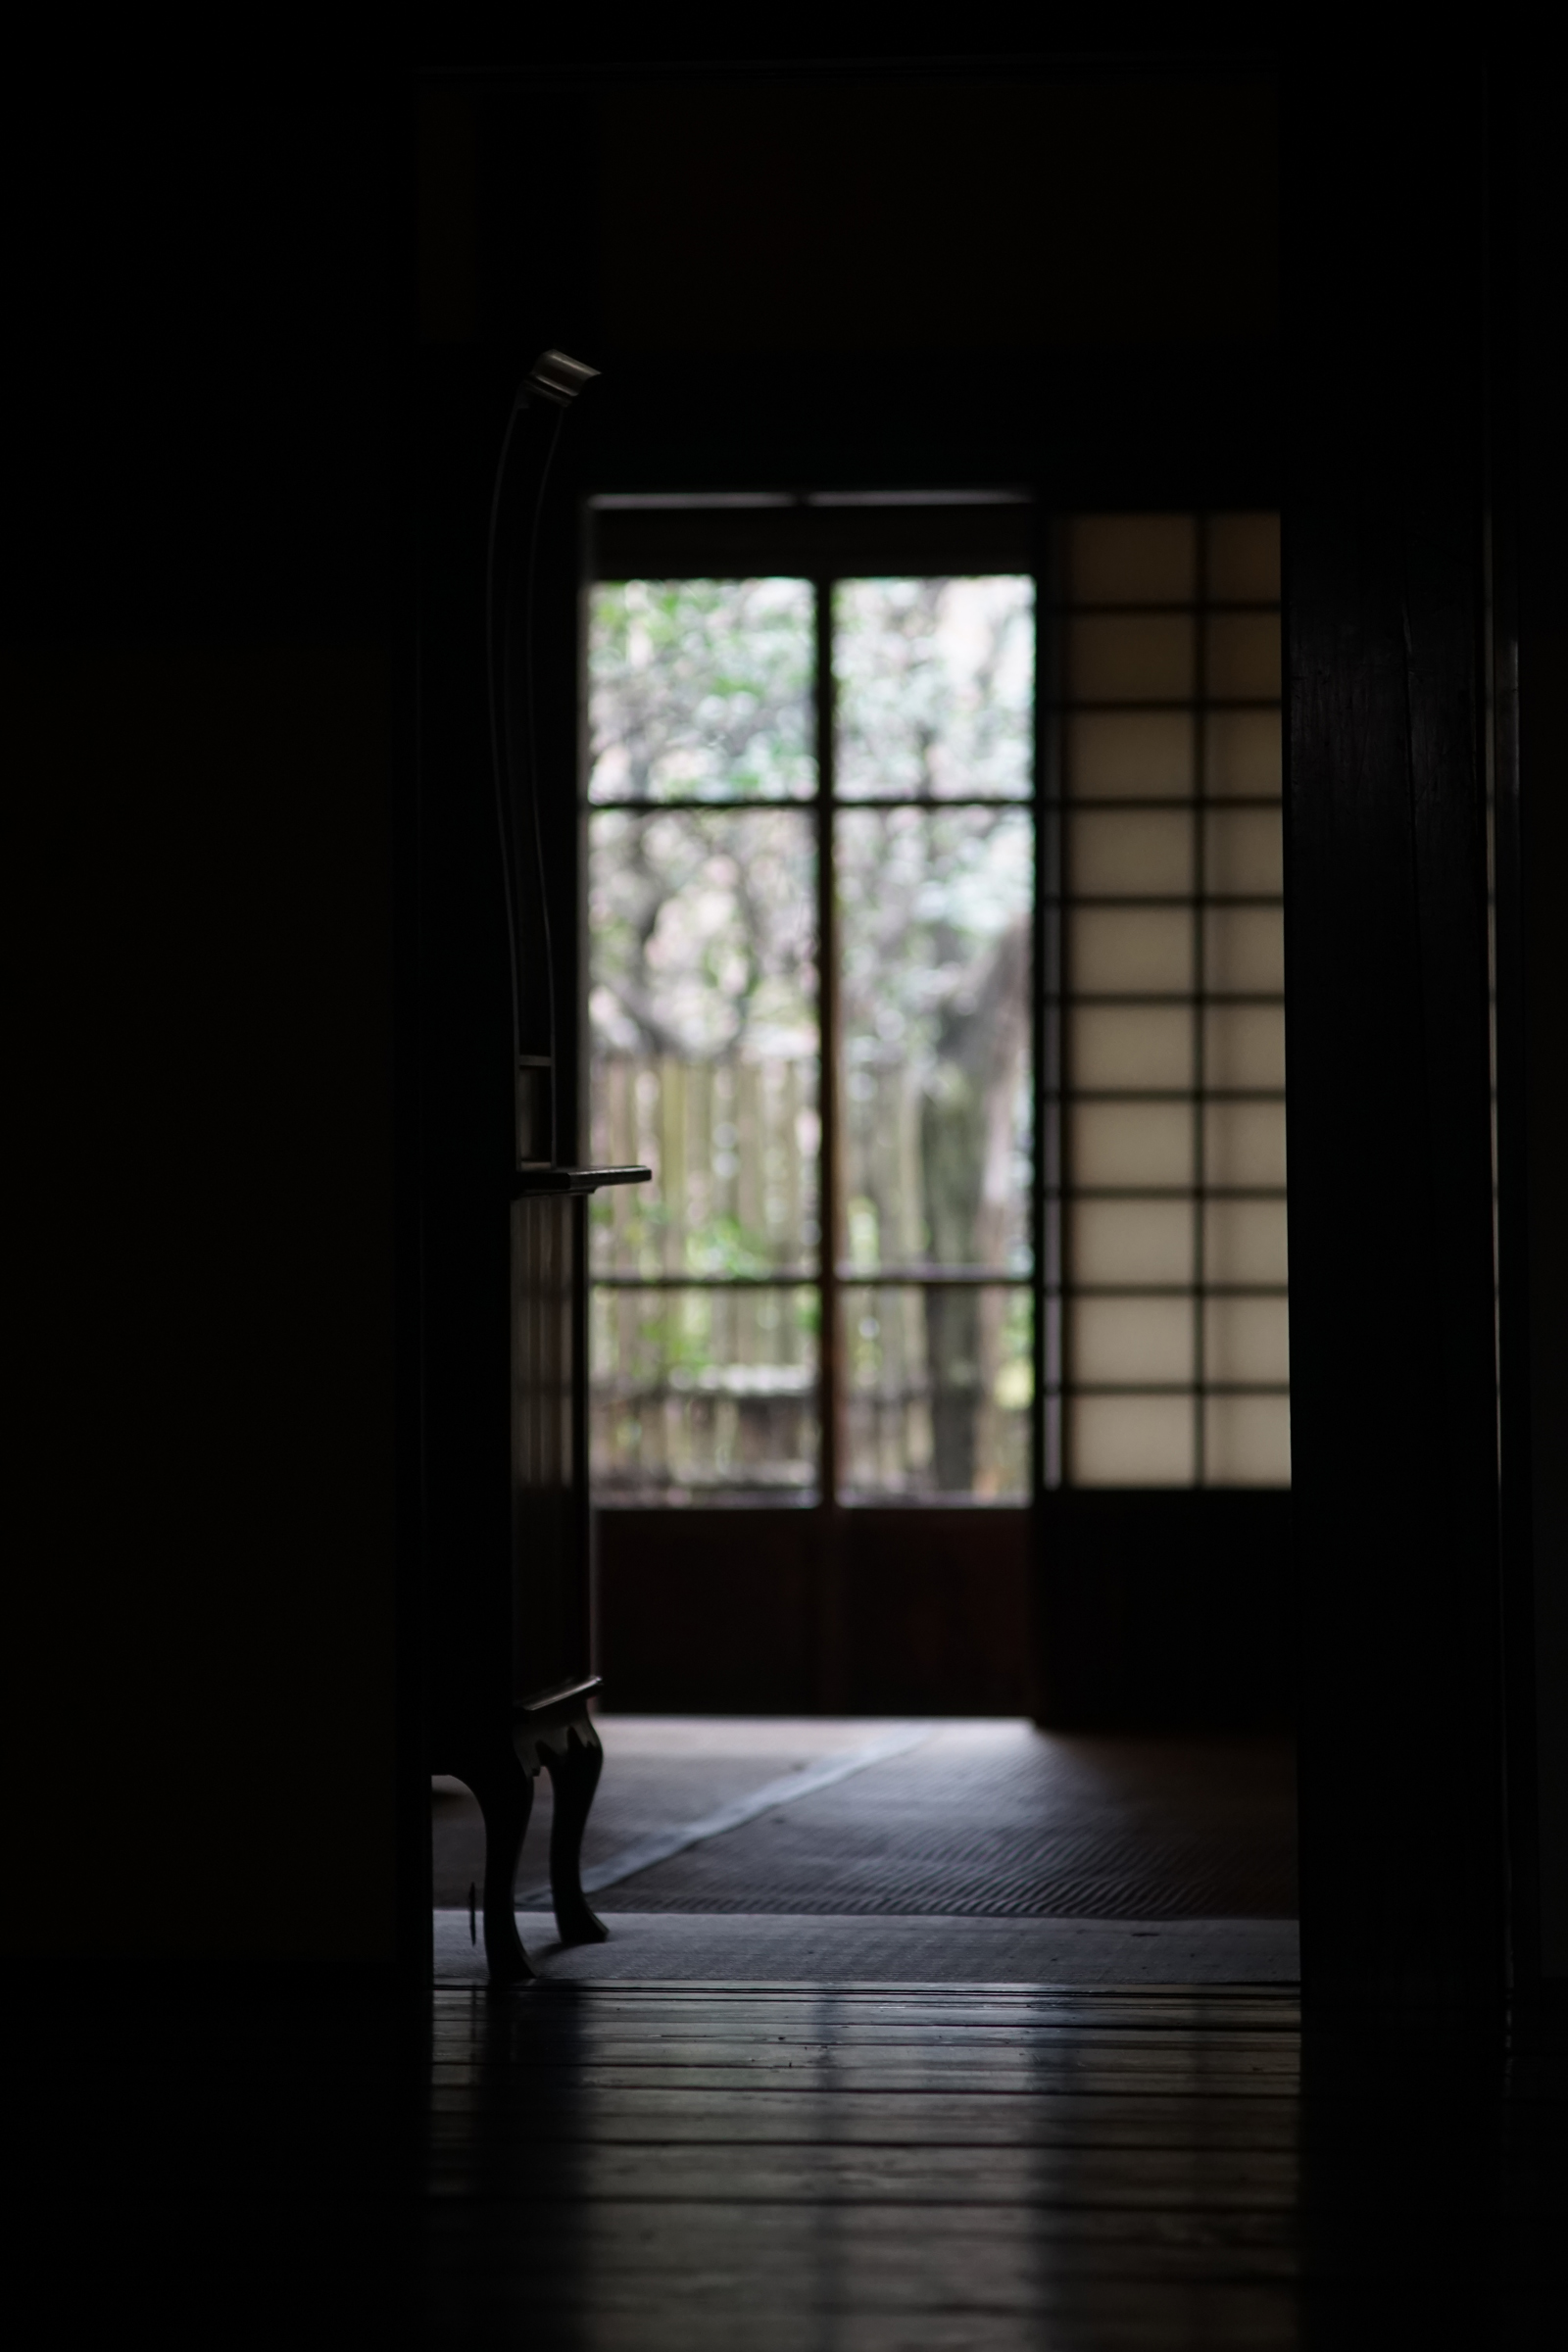 SONY a7 + CarlZeiss Sonnar 135mm F2.8